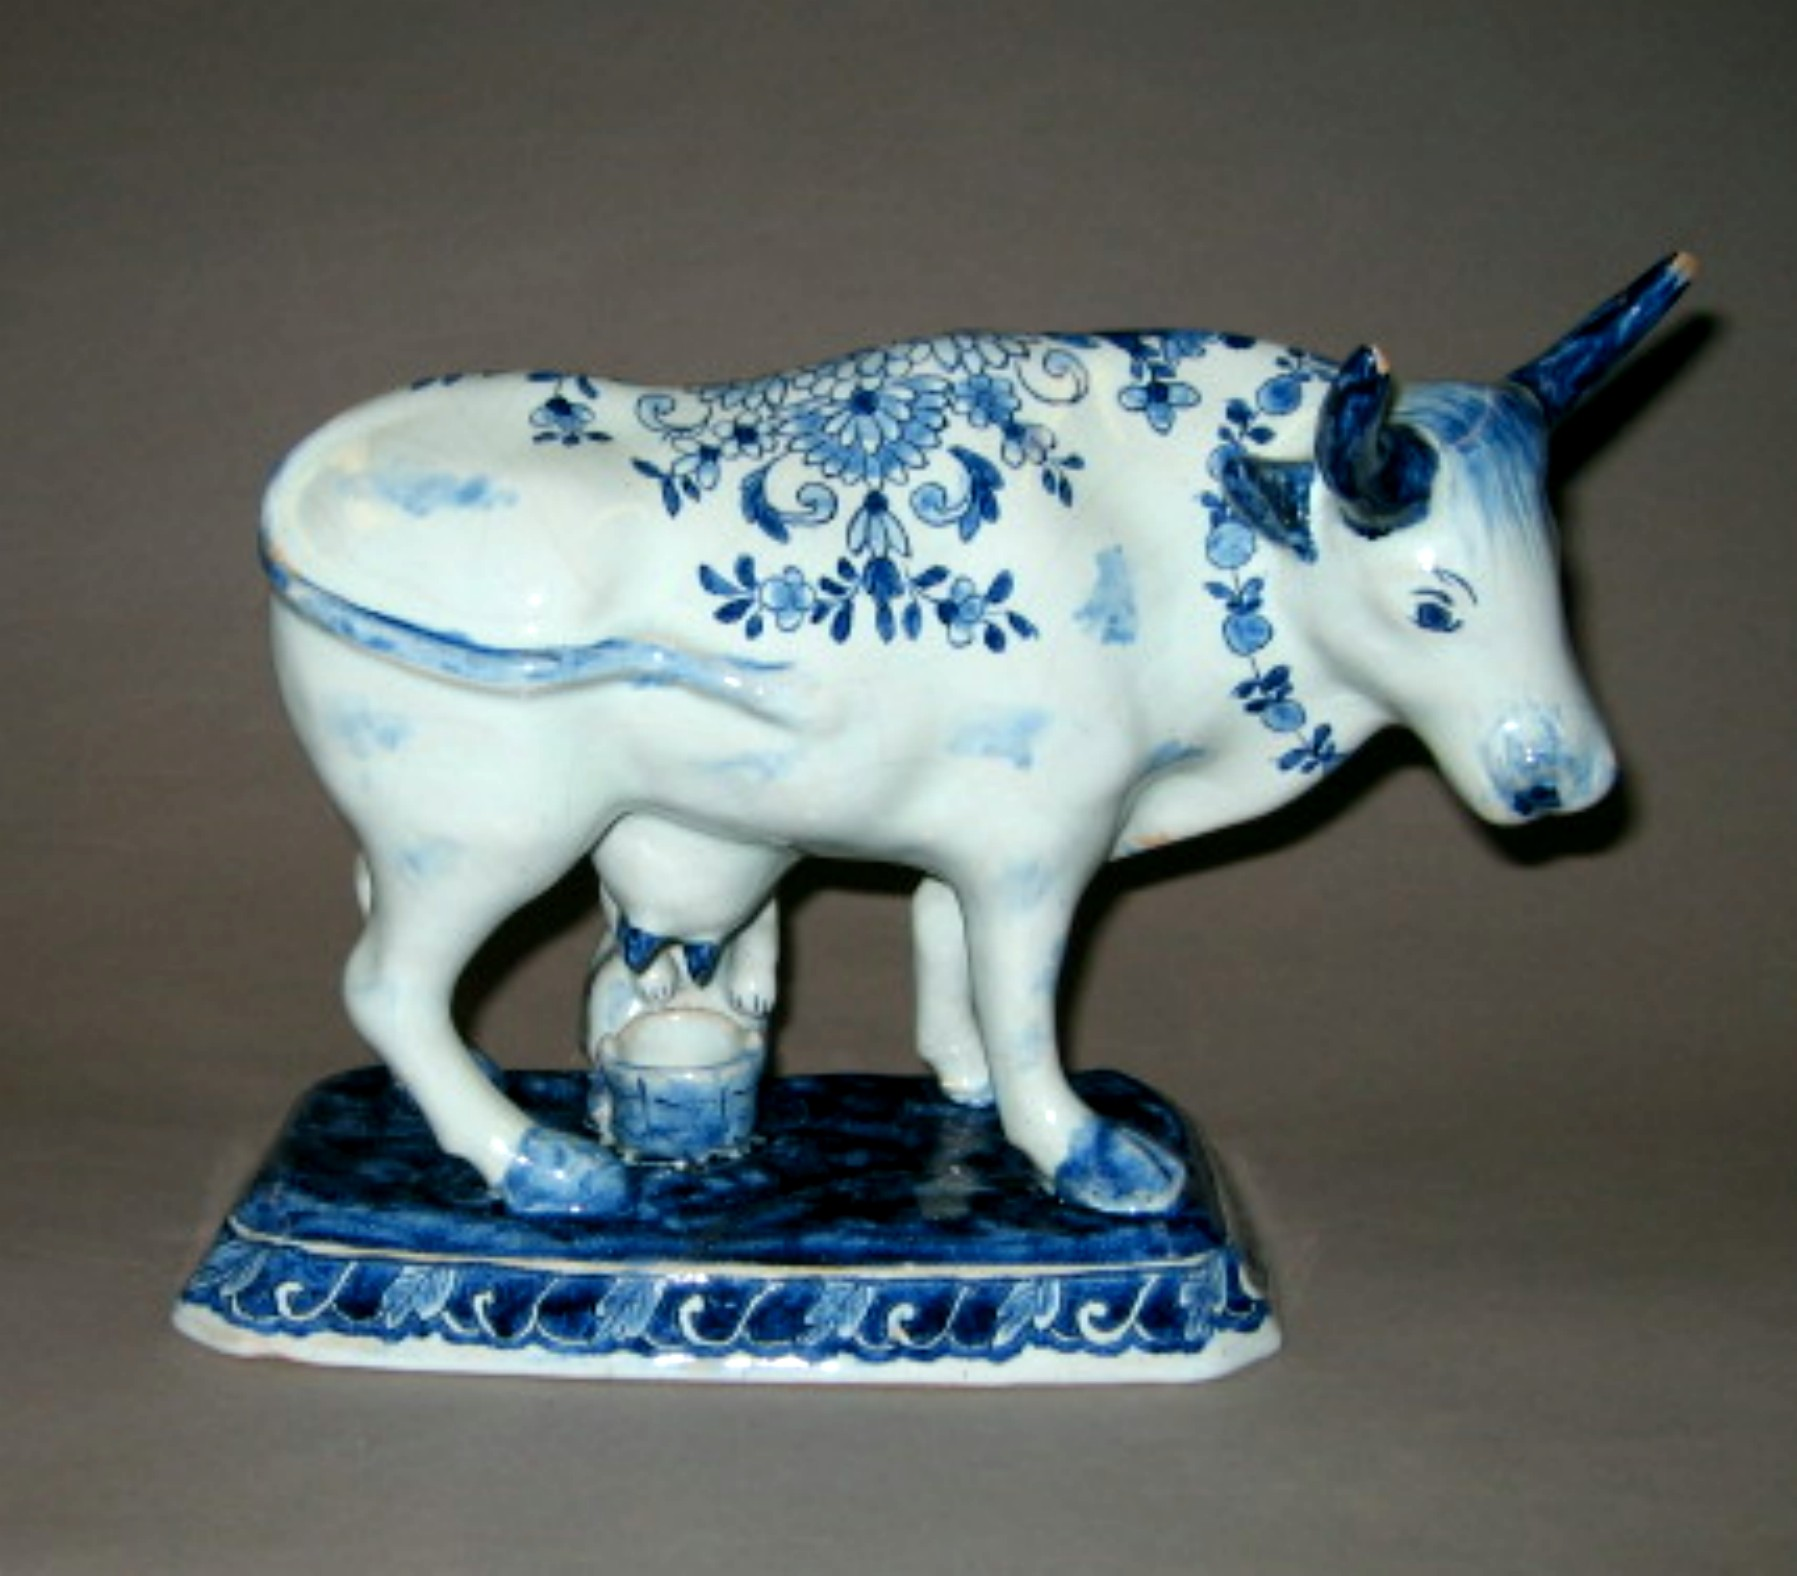 1964.0970 Tin-glazed earthenware figure